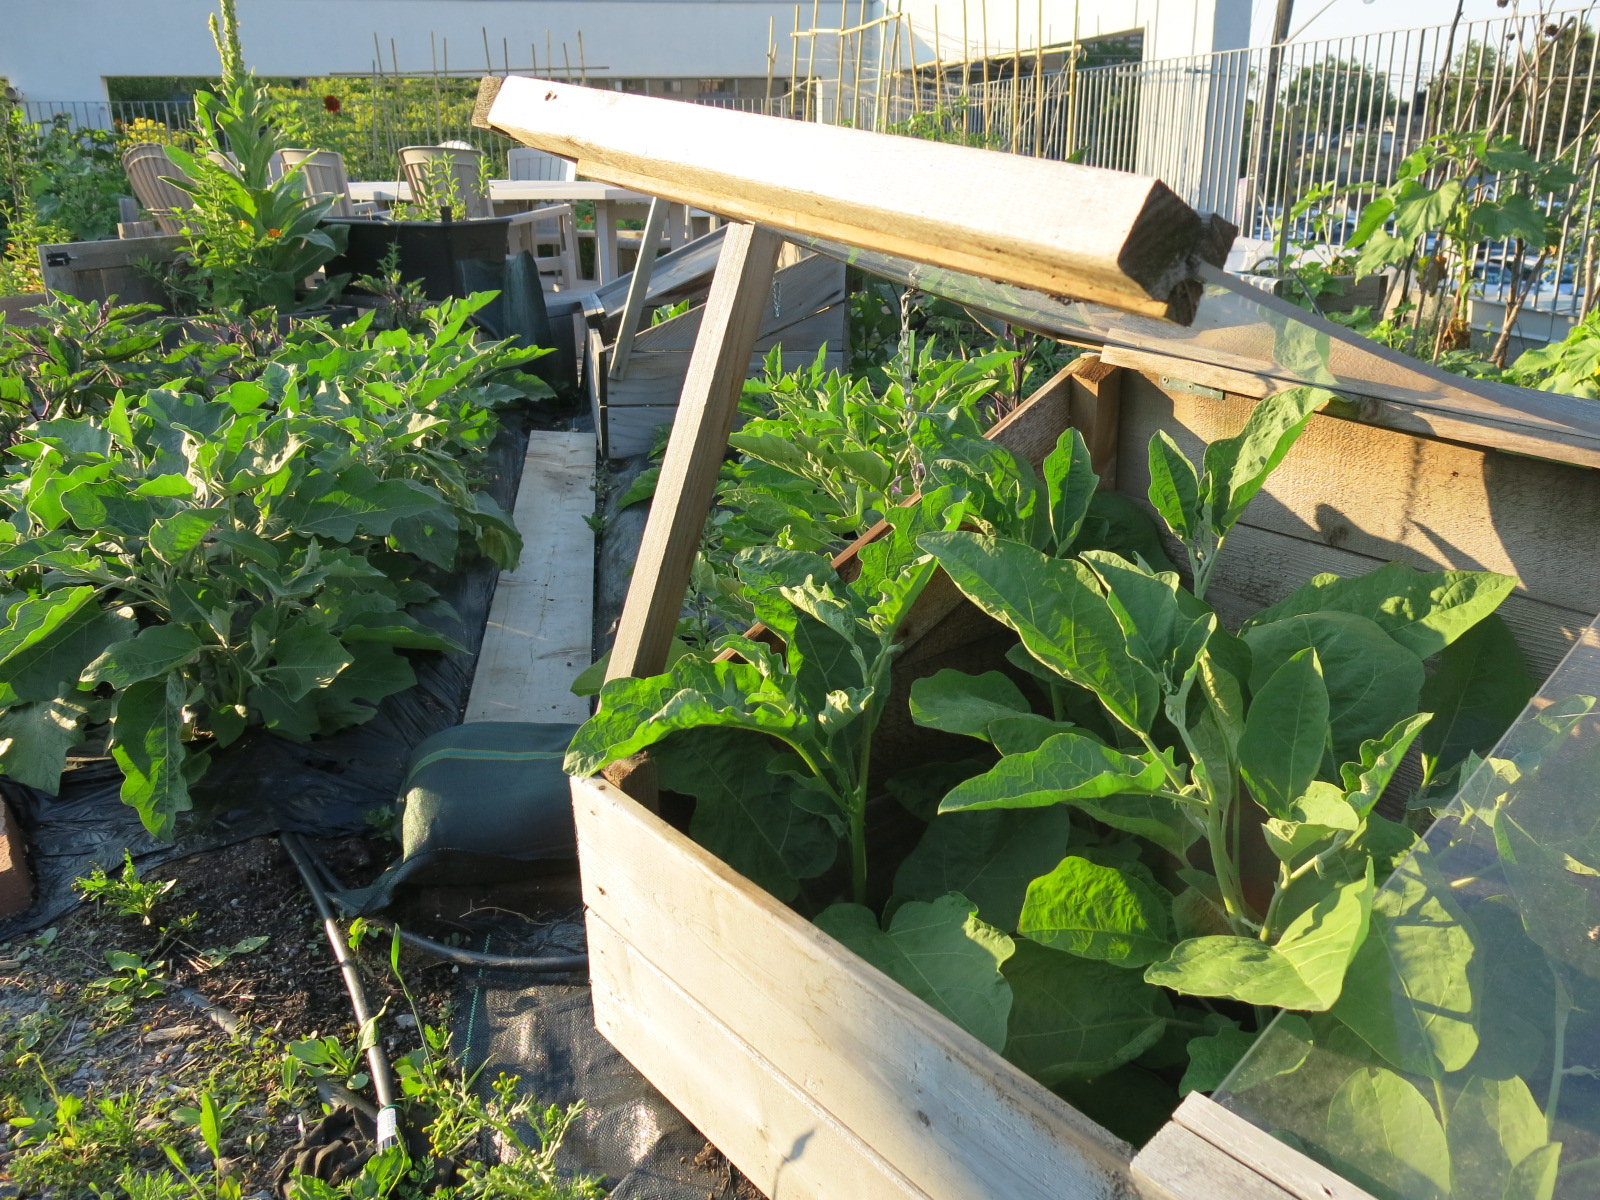 Cold frames with eggplants on Access Alliance's Green Roof at Danforth and Victoria Park